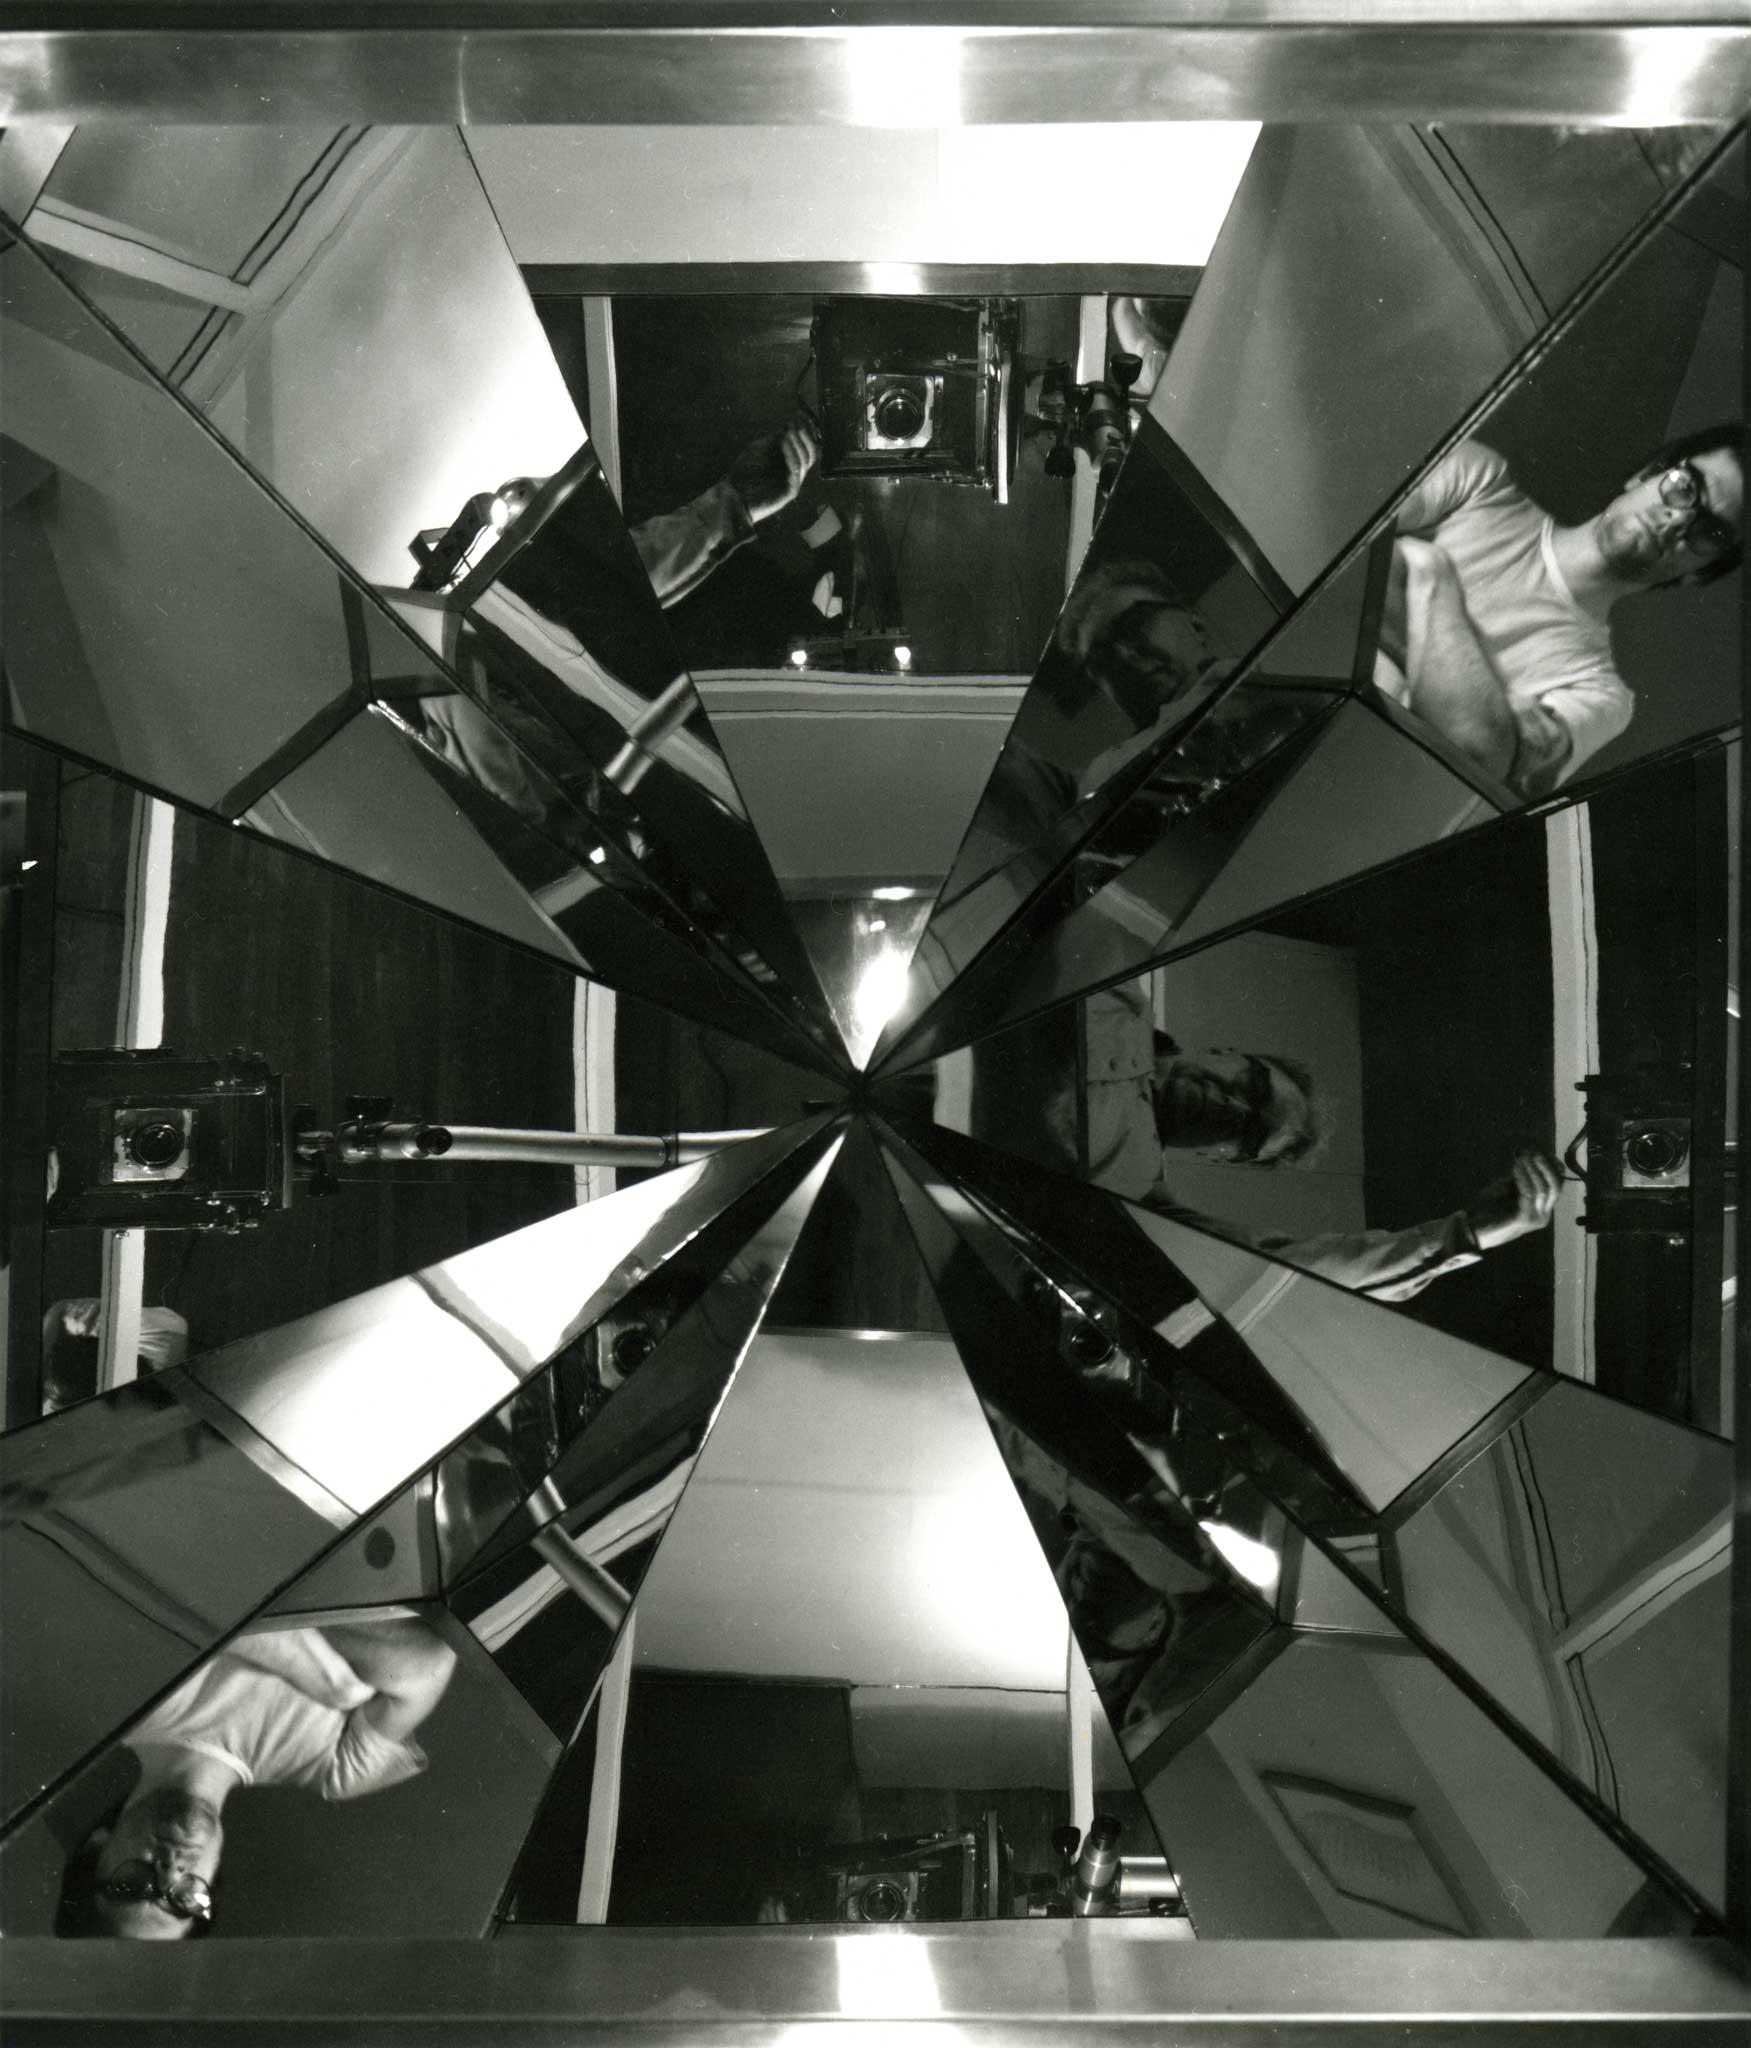 black and white image of angular reflections converging at a center point.  Reflections are of of two men standing looking into the mirrors